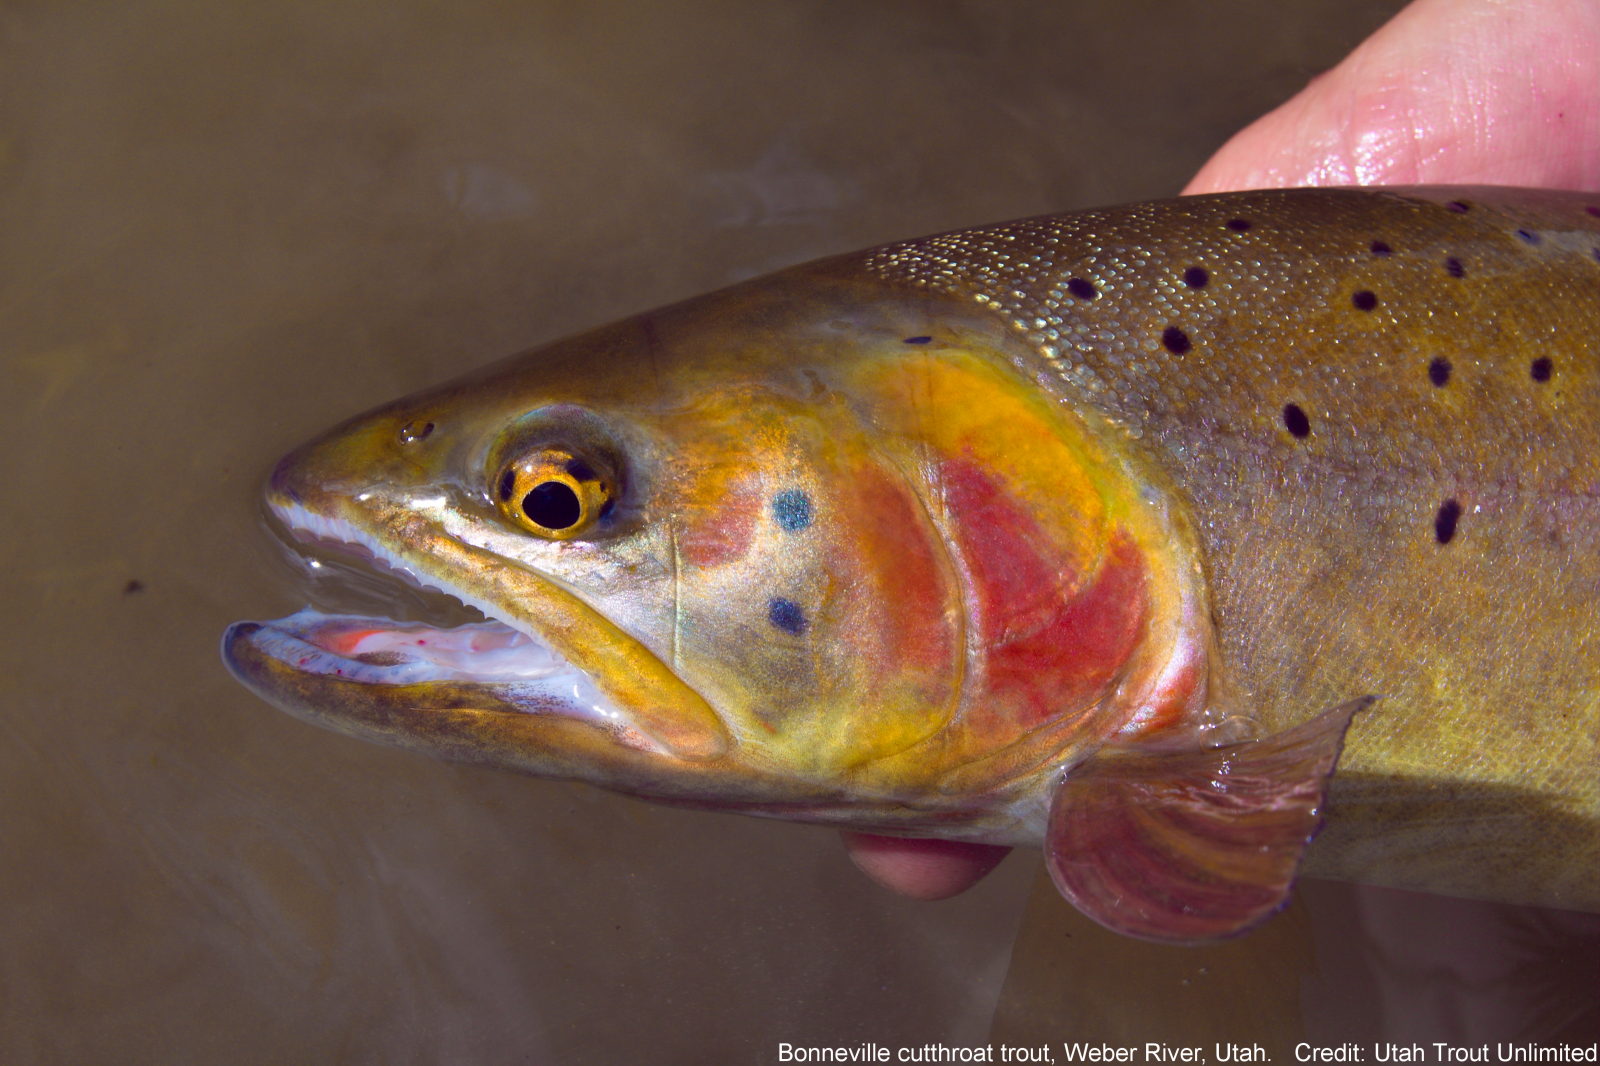 Close up of Bonneville cutthroat trout. Credit: Utah Trout Unlimited